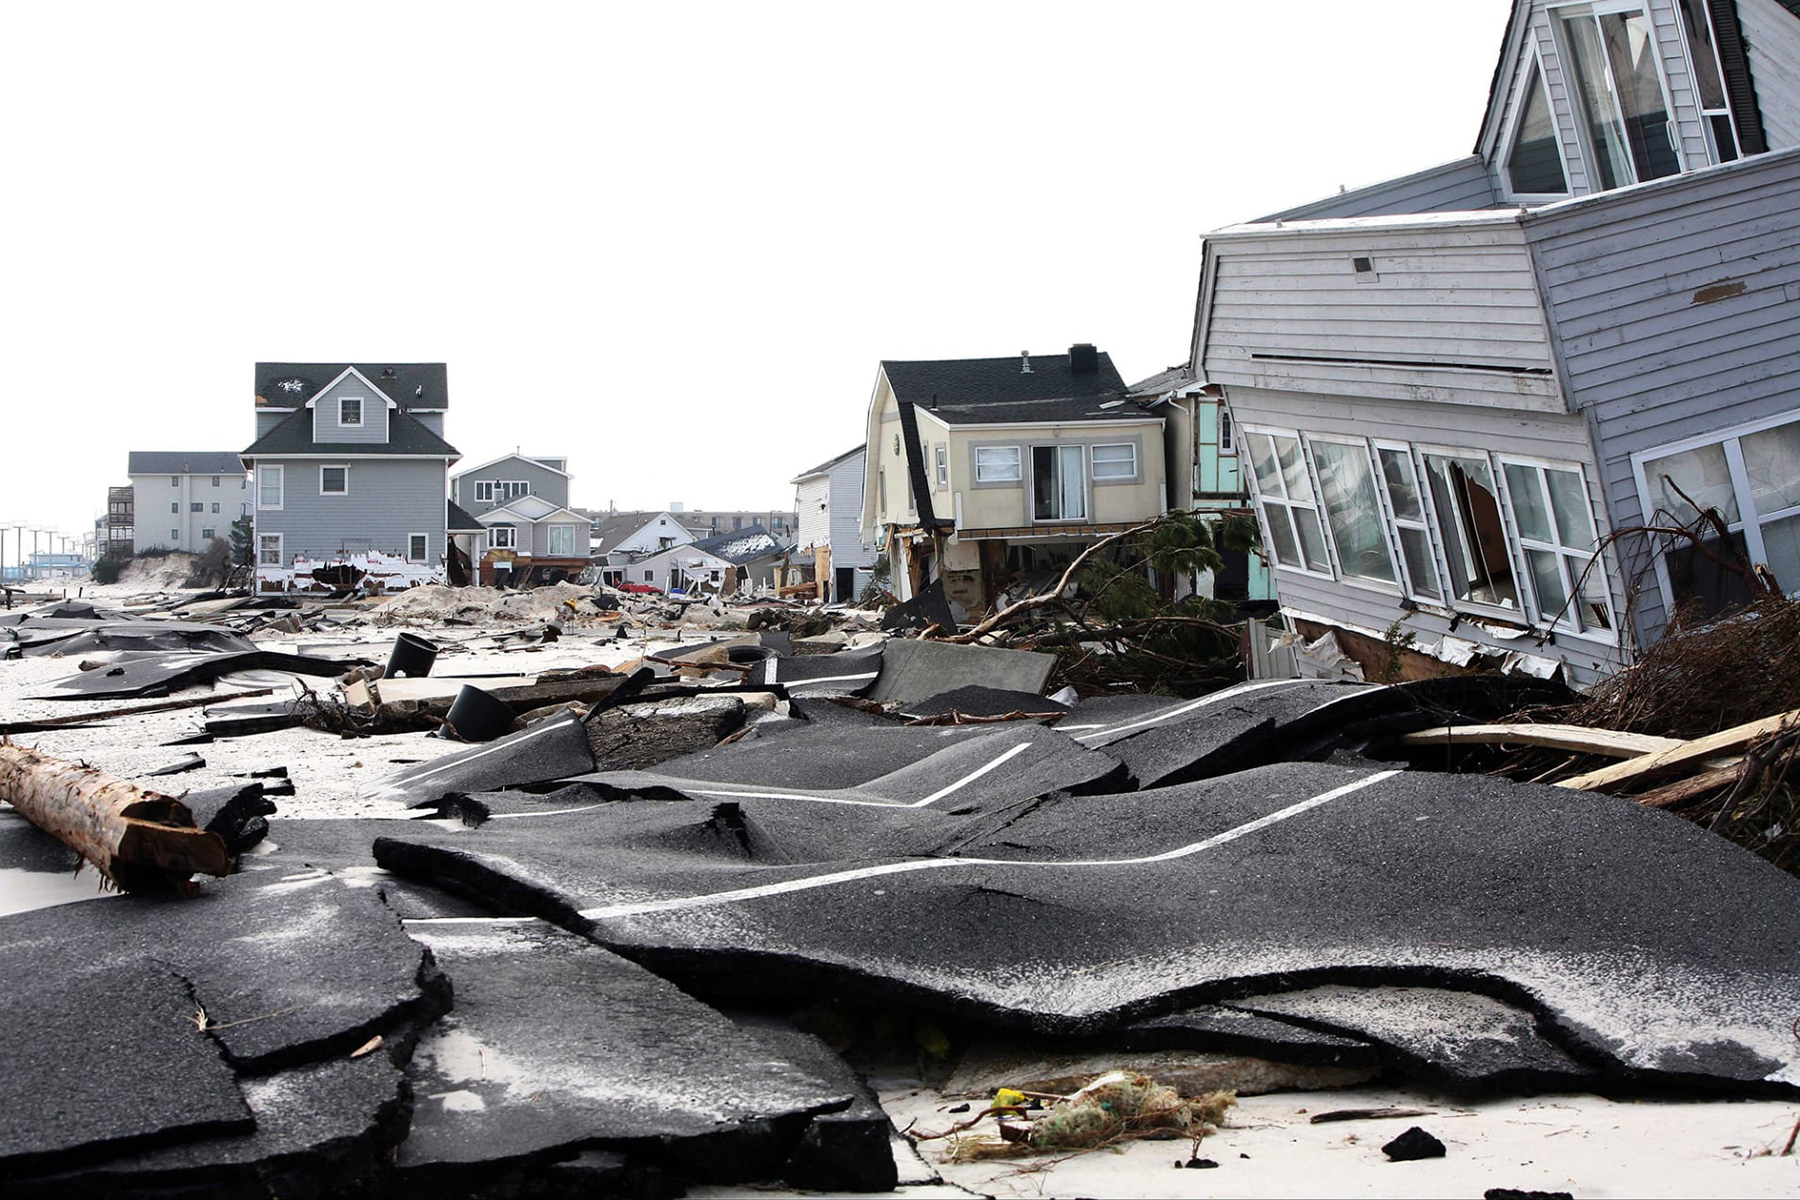 Ortley Beach, New Jersey, in 2012, after Hurricane Sandy